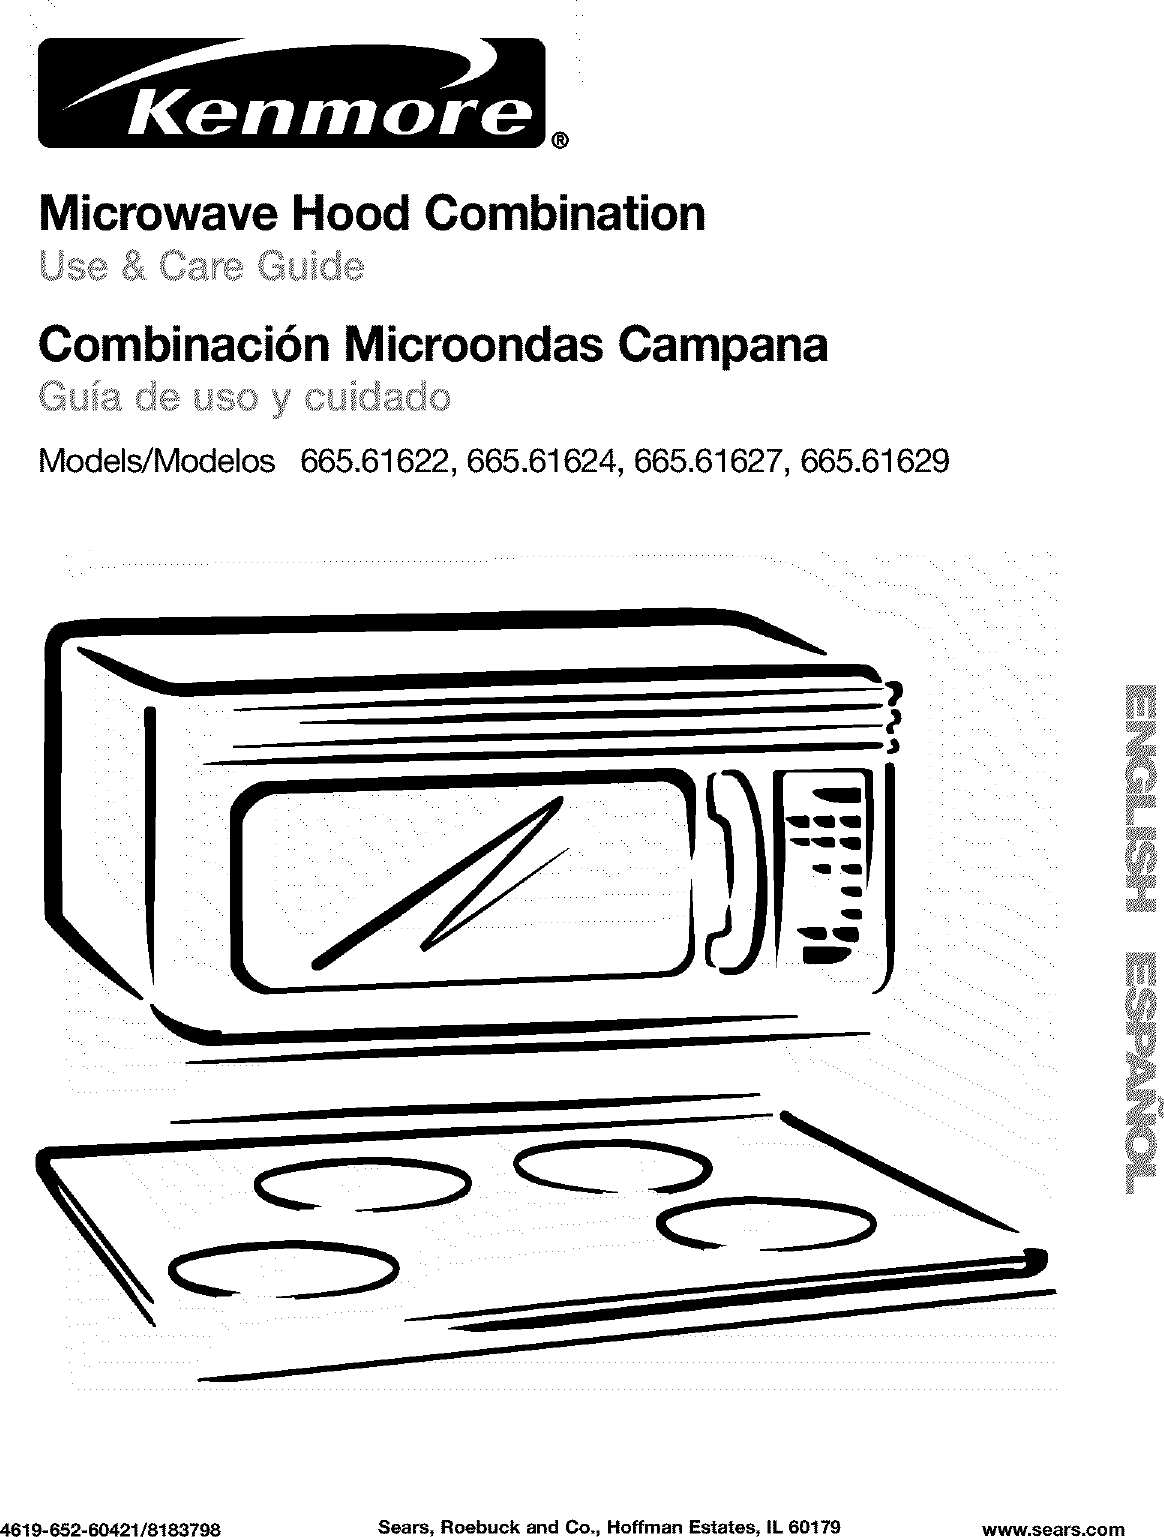 Kenmore 66561627100 User Manual MICROWAVE/HOOD COMBO